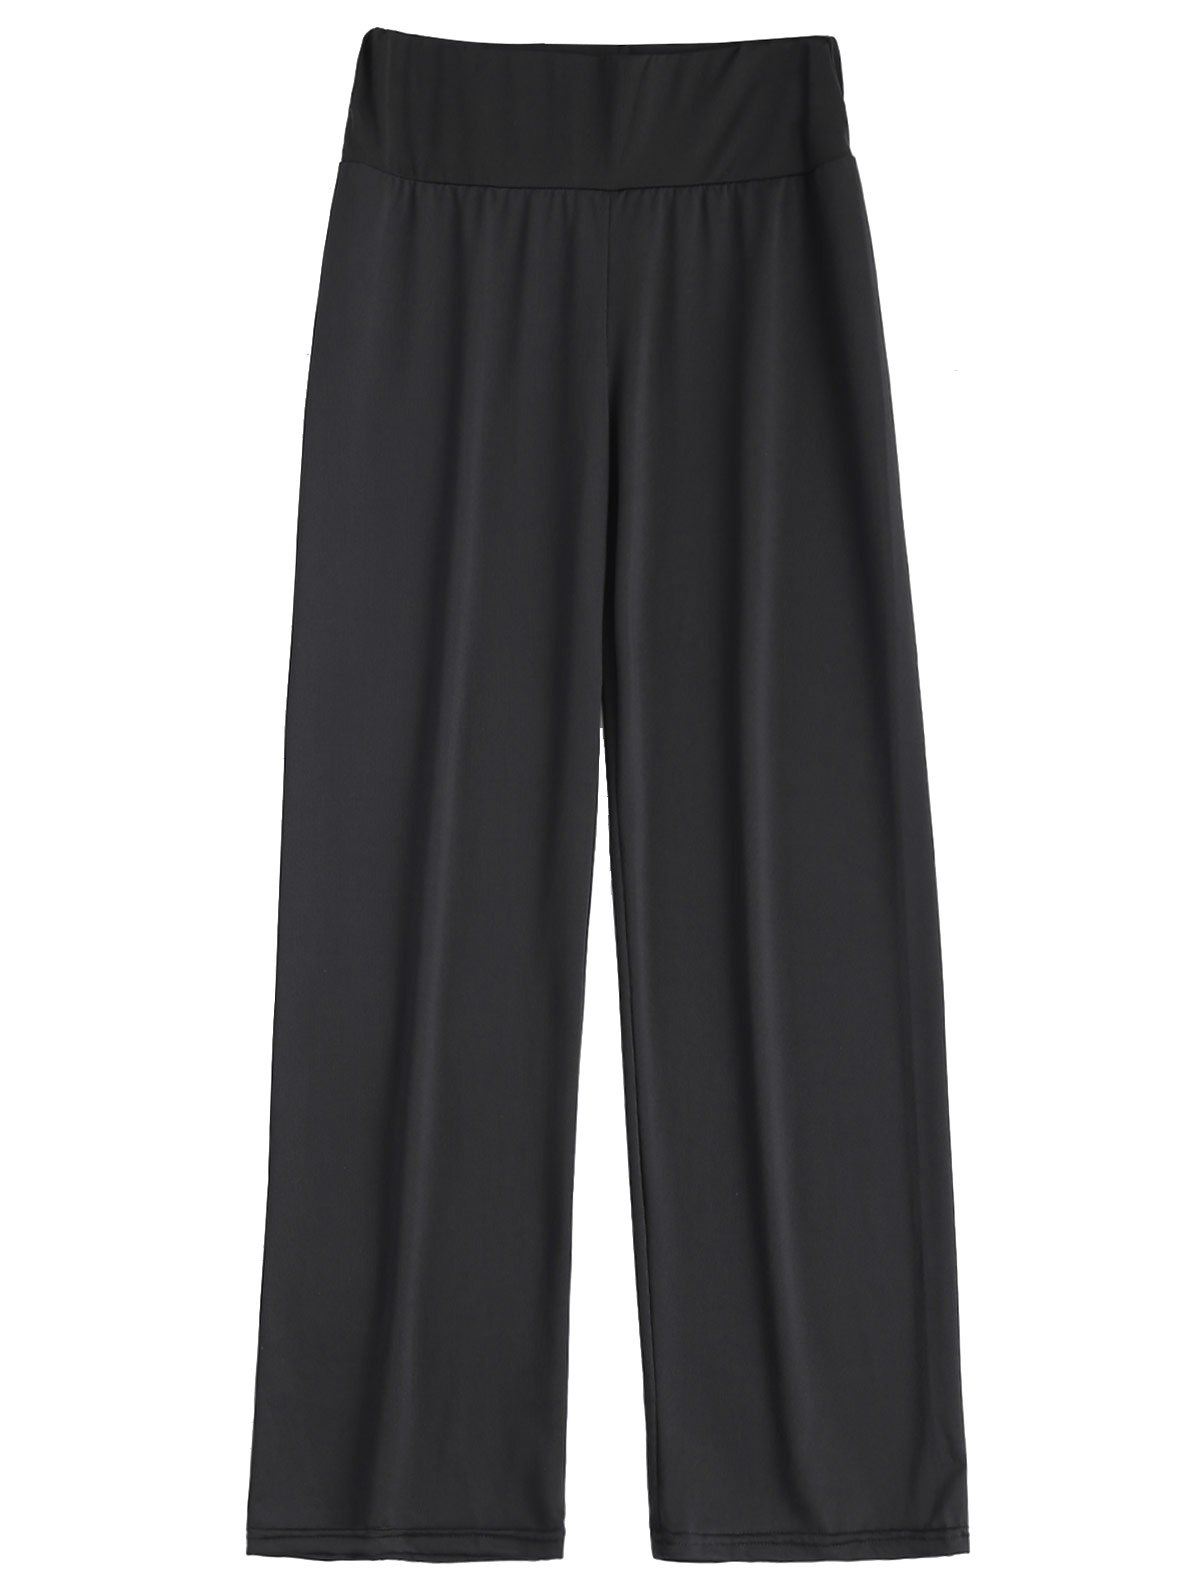 Long Stretch Elastic Waist Wide Leg Work PantsWOMEN<br><br>Size: XL; Color: BLACK; Style: Casual; Length: Normal; Material: Polyester; Fit Type: Loose; Waist Type: Mid; Closure Type: Elastic Waist; Pattern Type: Solid; Pant Style: Wide Leg Pants; Elasticity: Elastic; With Belt: No; Weight: 0.209kg; Package Contents: 1 x Pants;